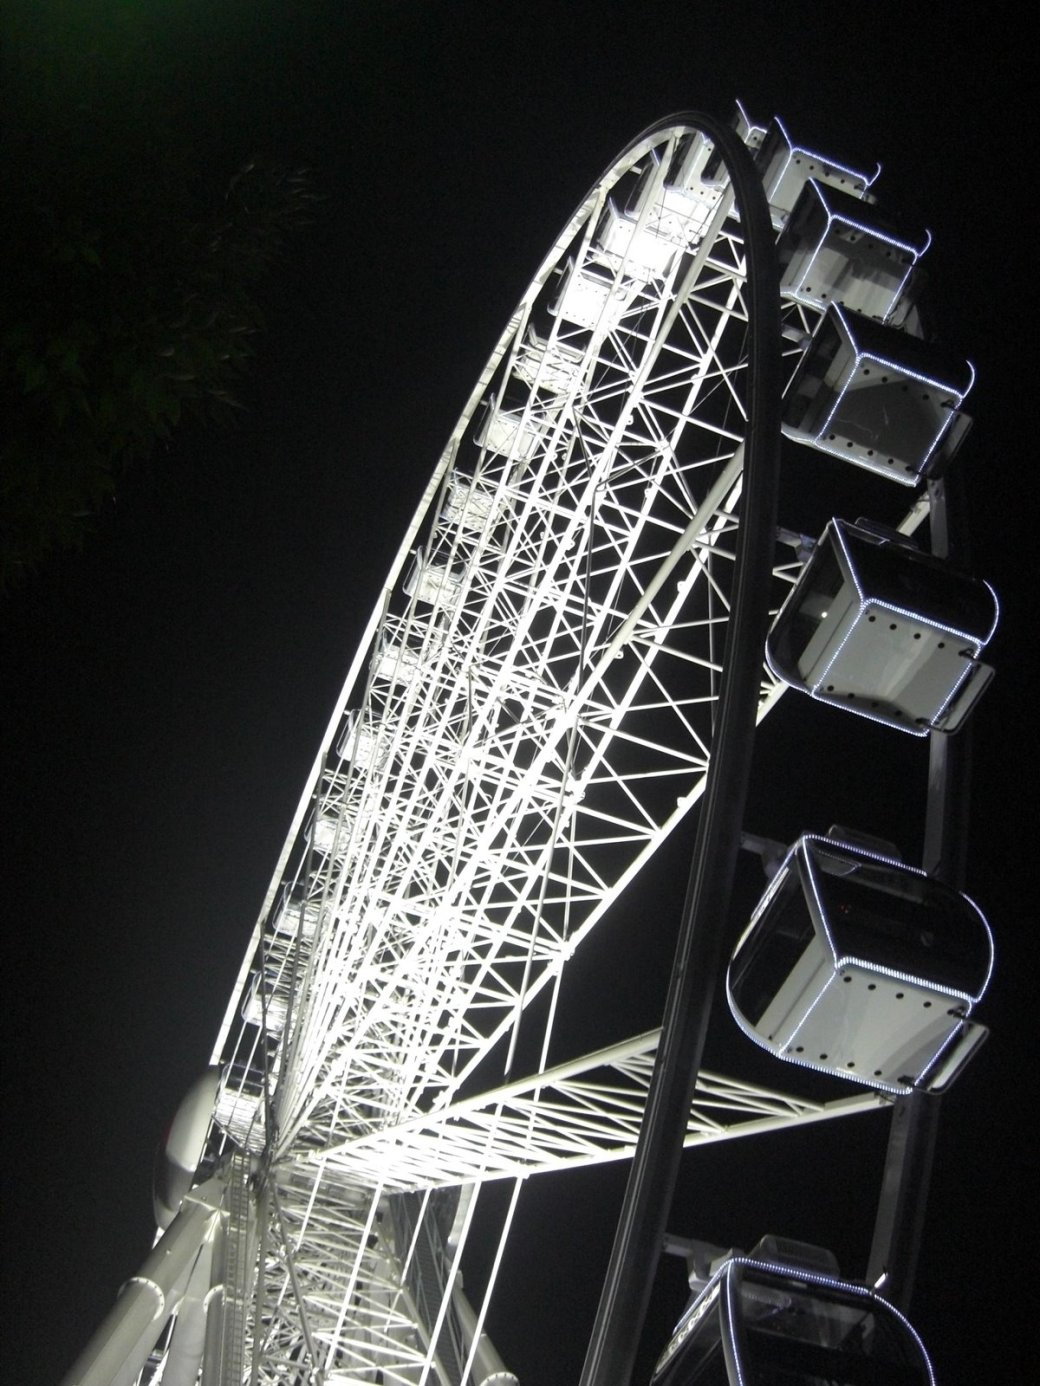 One more shot of that great wheel!